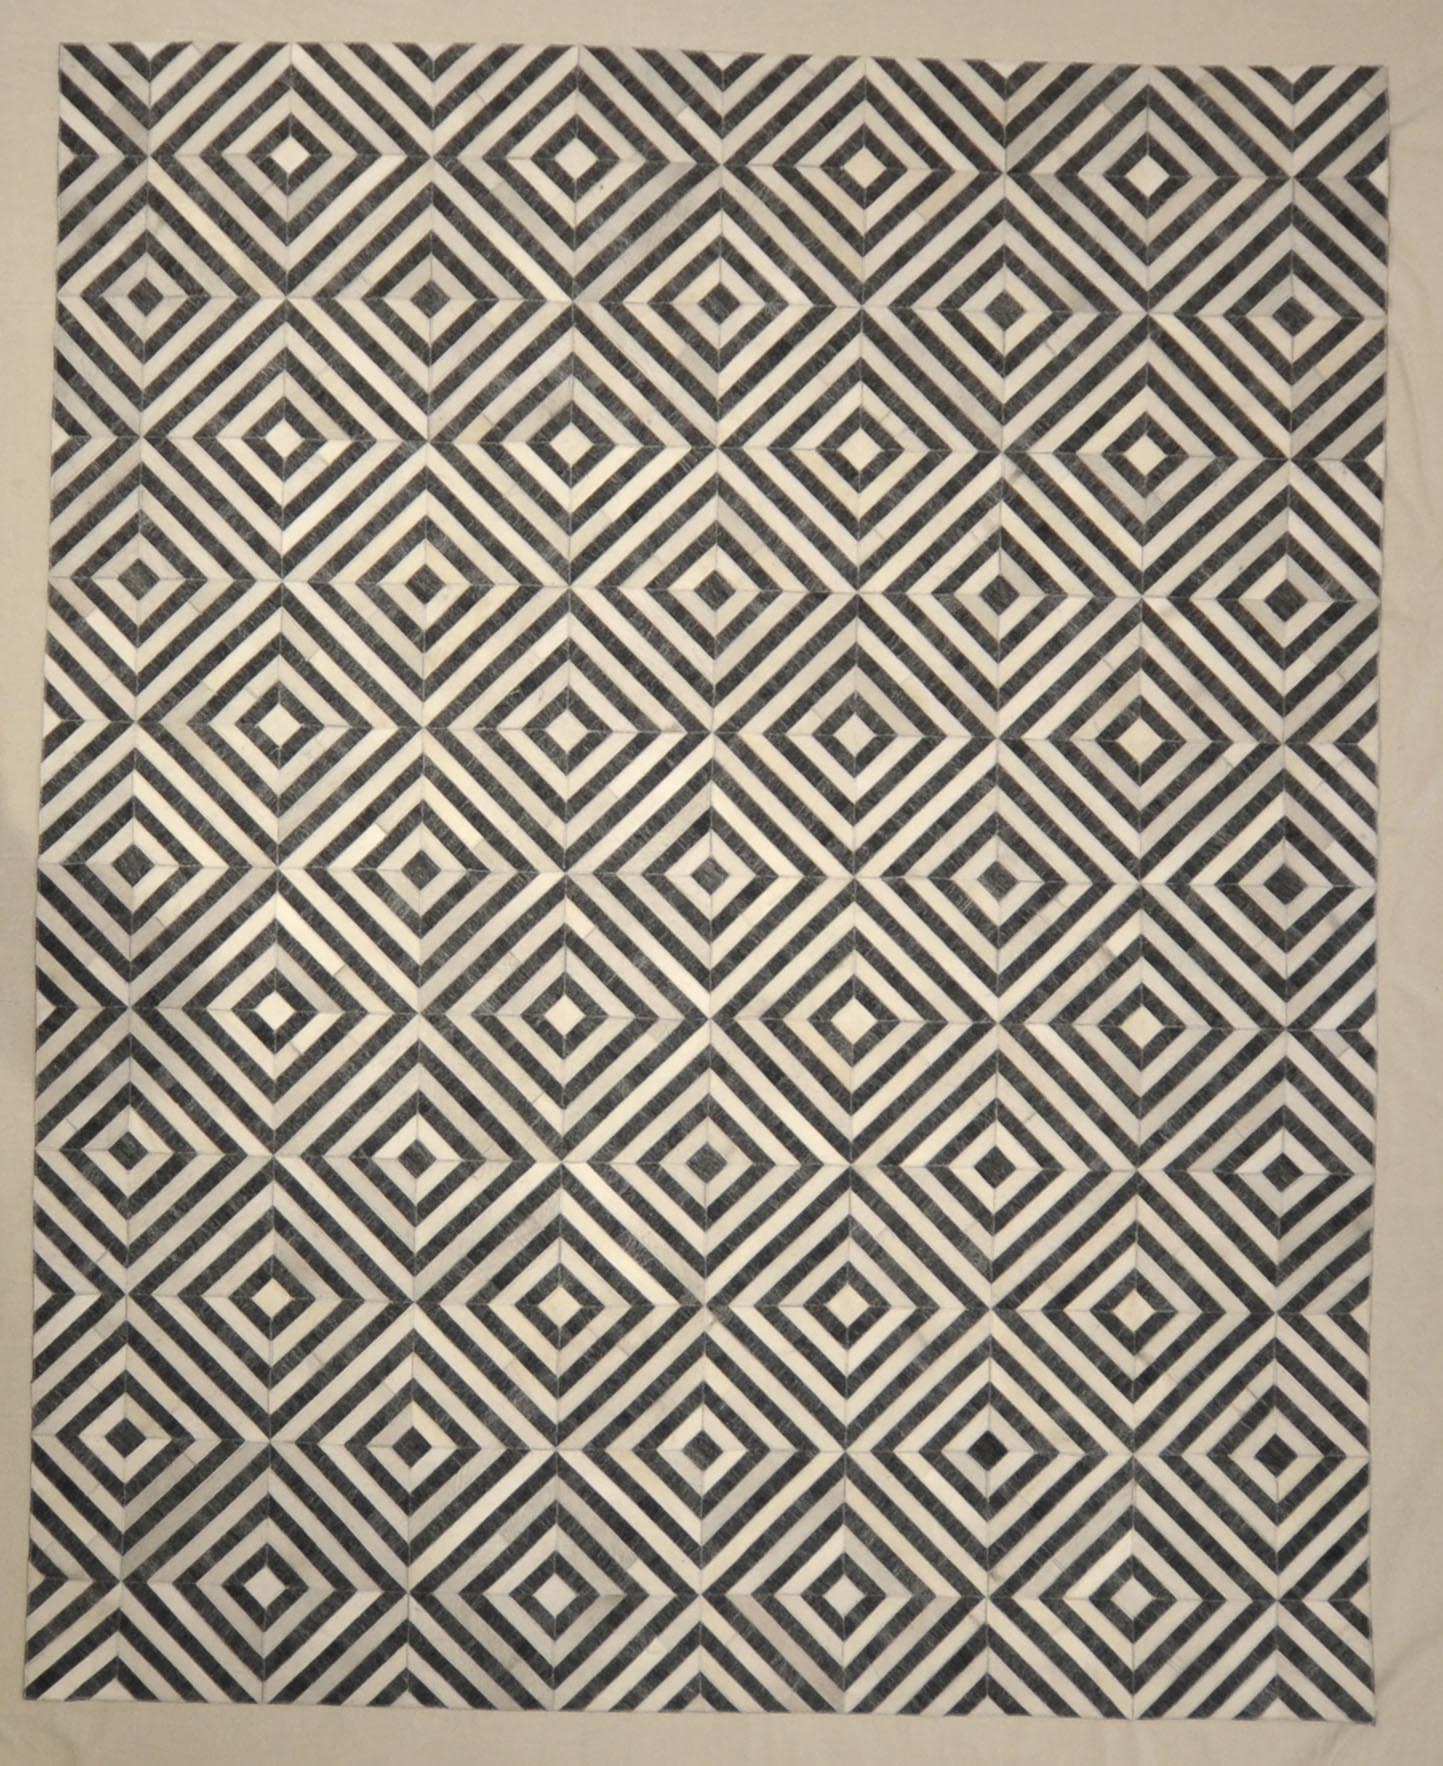 Modern Charcoal Ivory Rug Rugs and More | Santa Barbara Design Center 33002 .